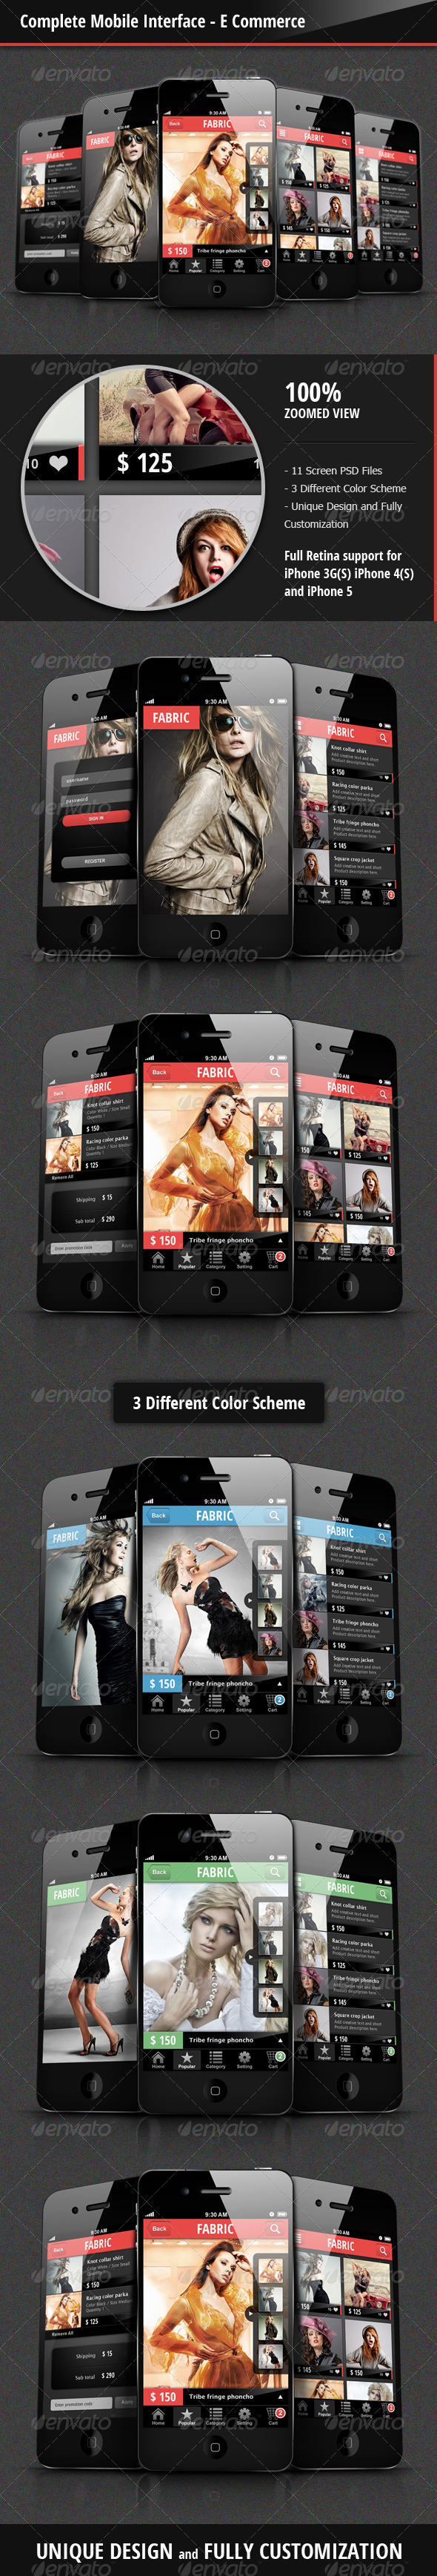 Complete Mobile Interface - E Commerce - User Interfaces Web Elements